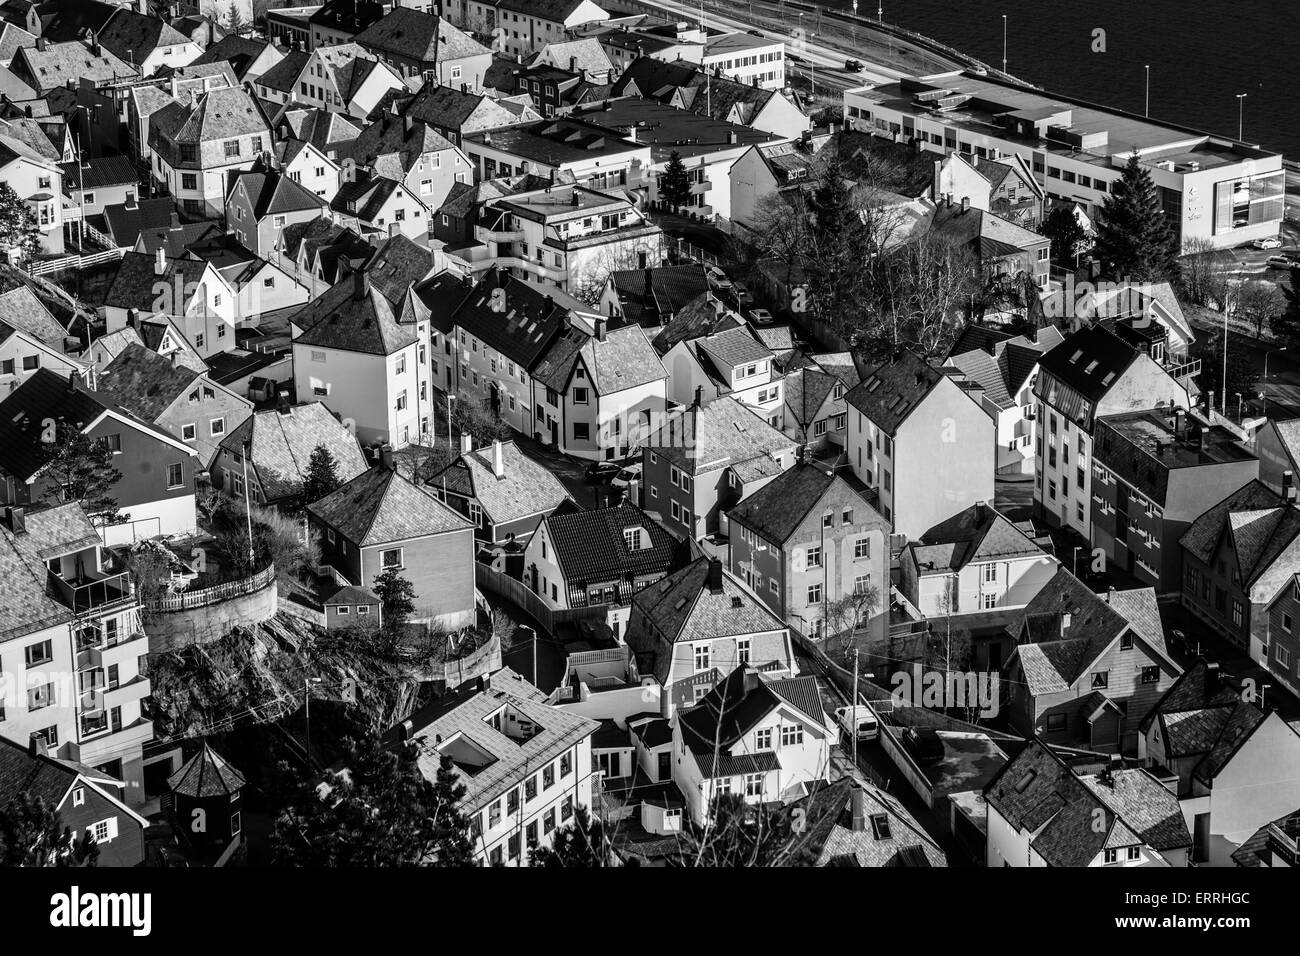 A view of Alesund in Norway from the Aksla viewpoint - Stock Image